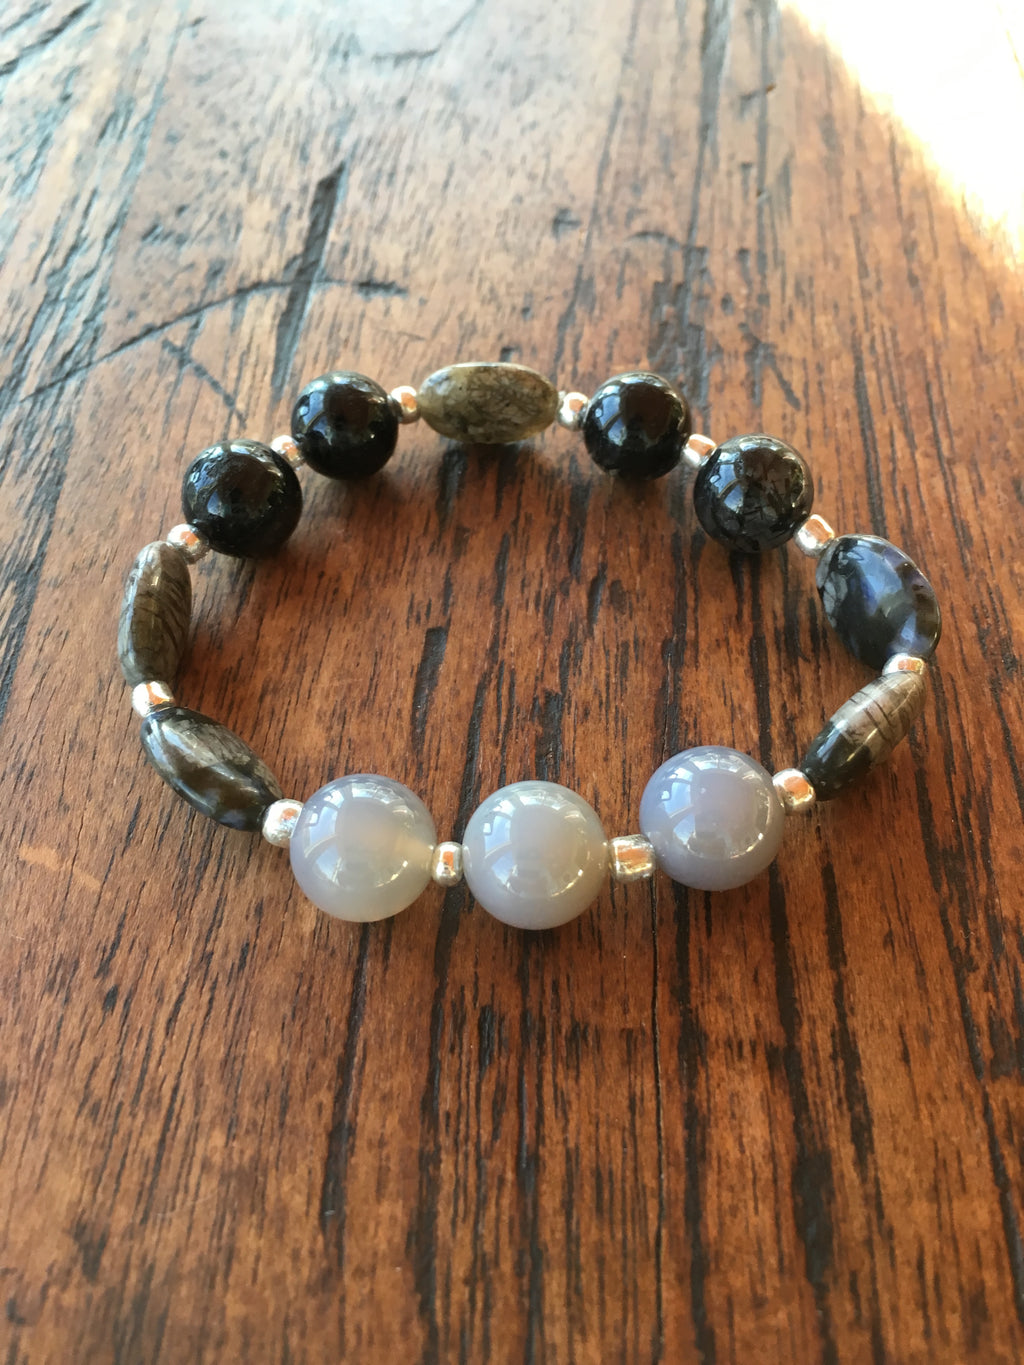 Quartz, Agate and Flash Stone Gemstone Bracelet